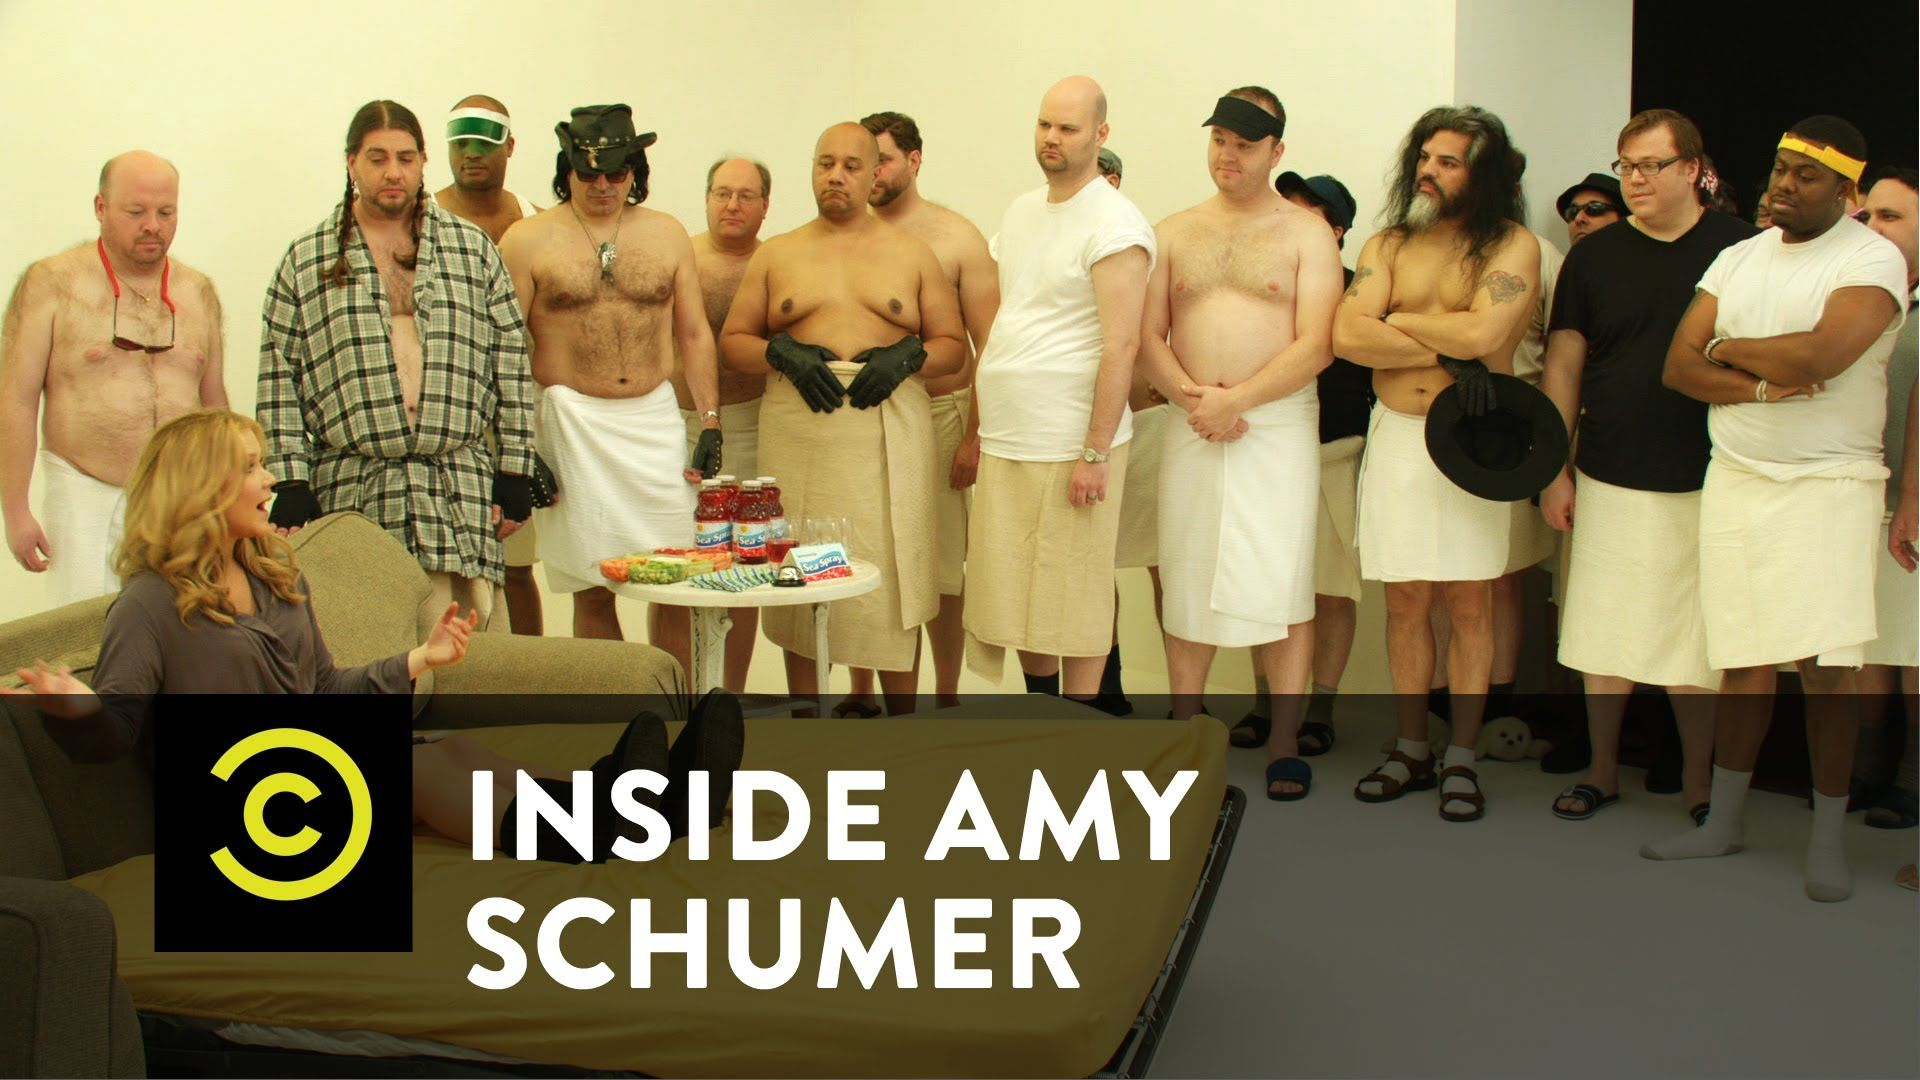 Uncensored inside amy schumer gang bang inside amy for Inside unrated